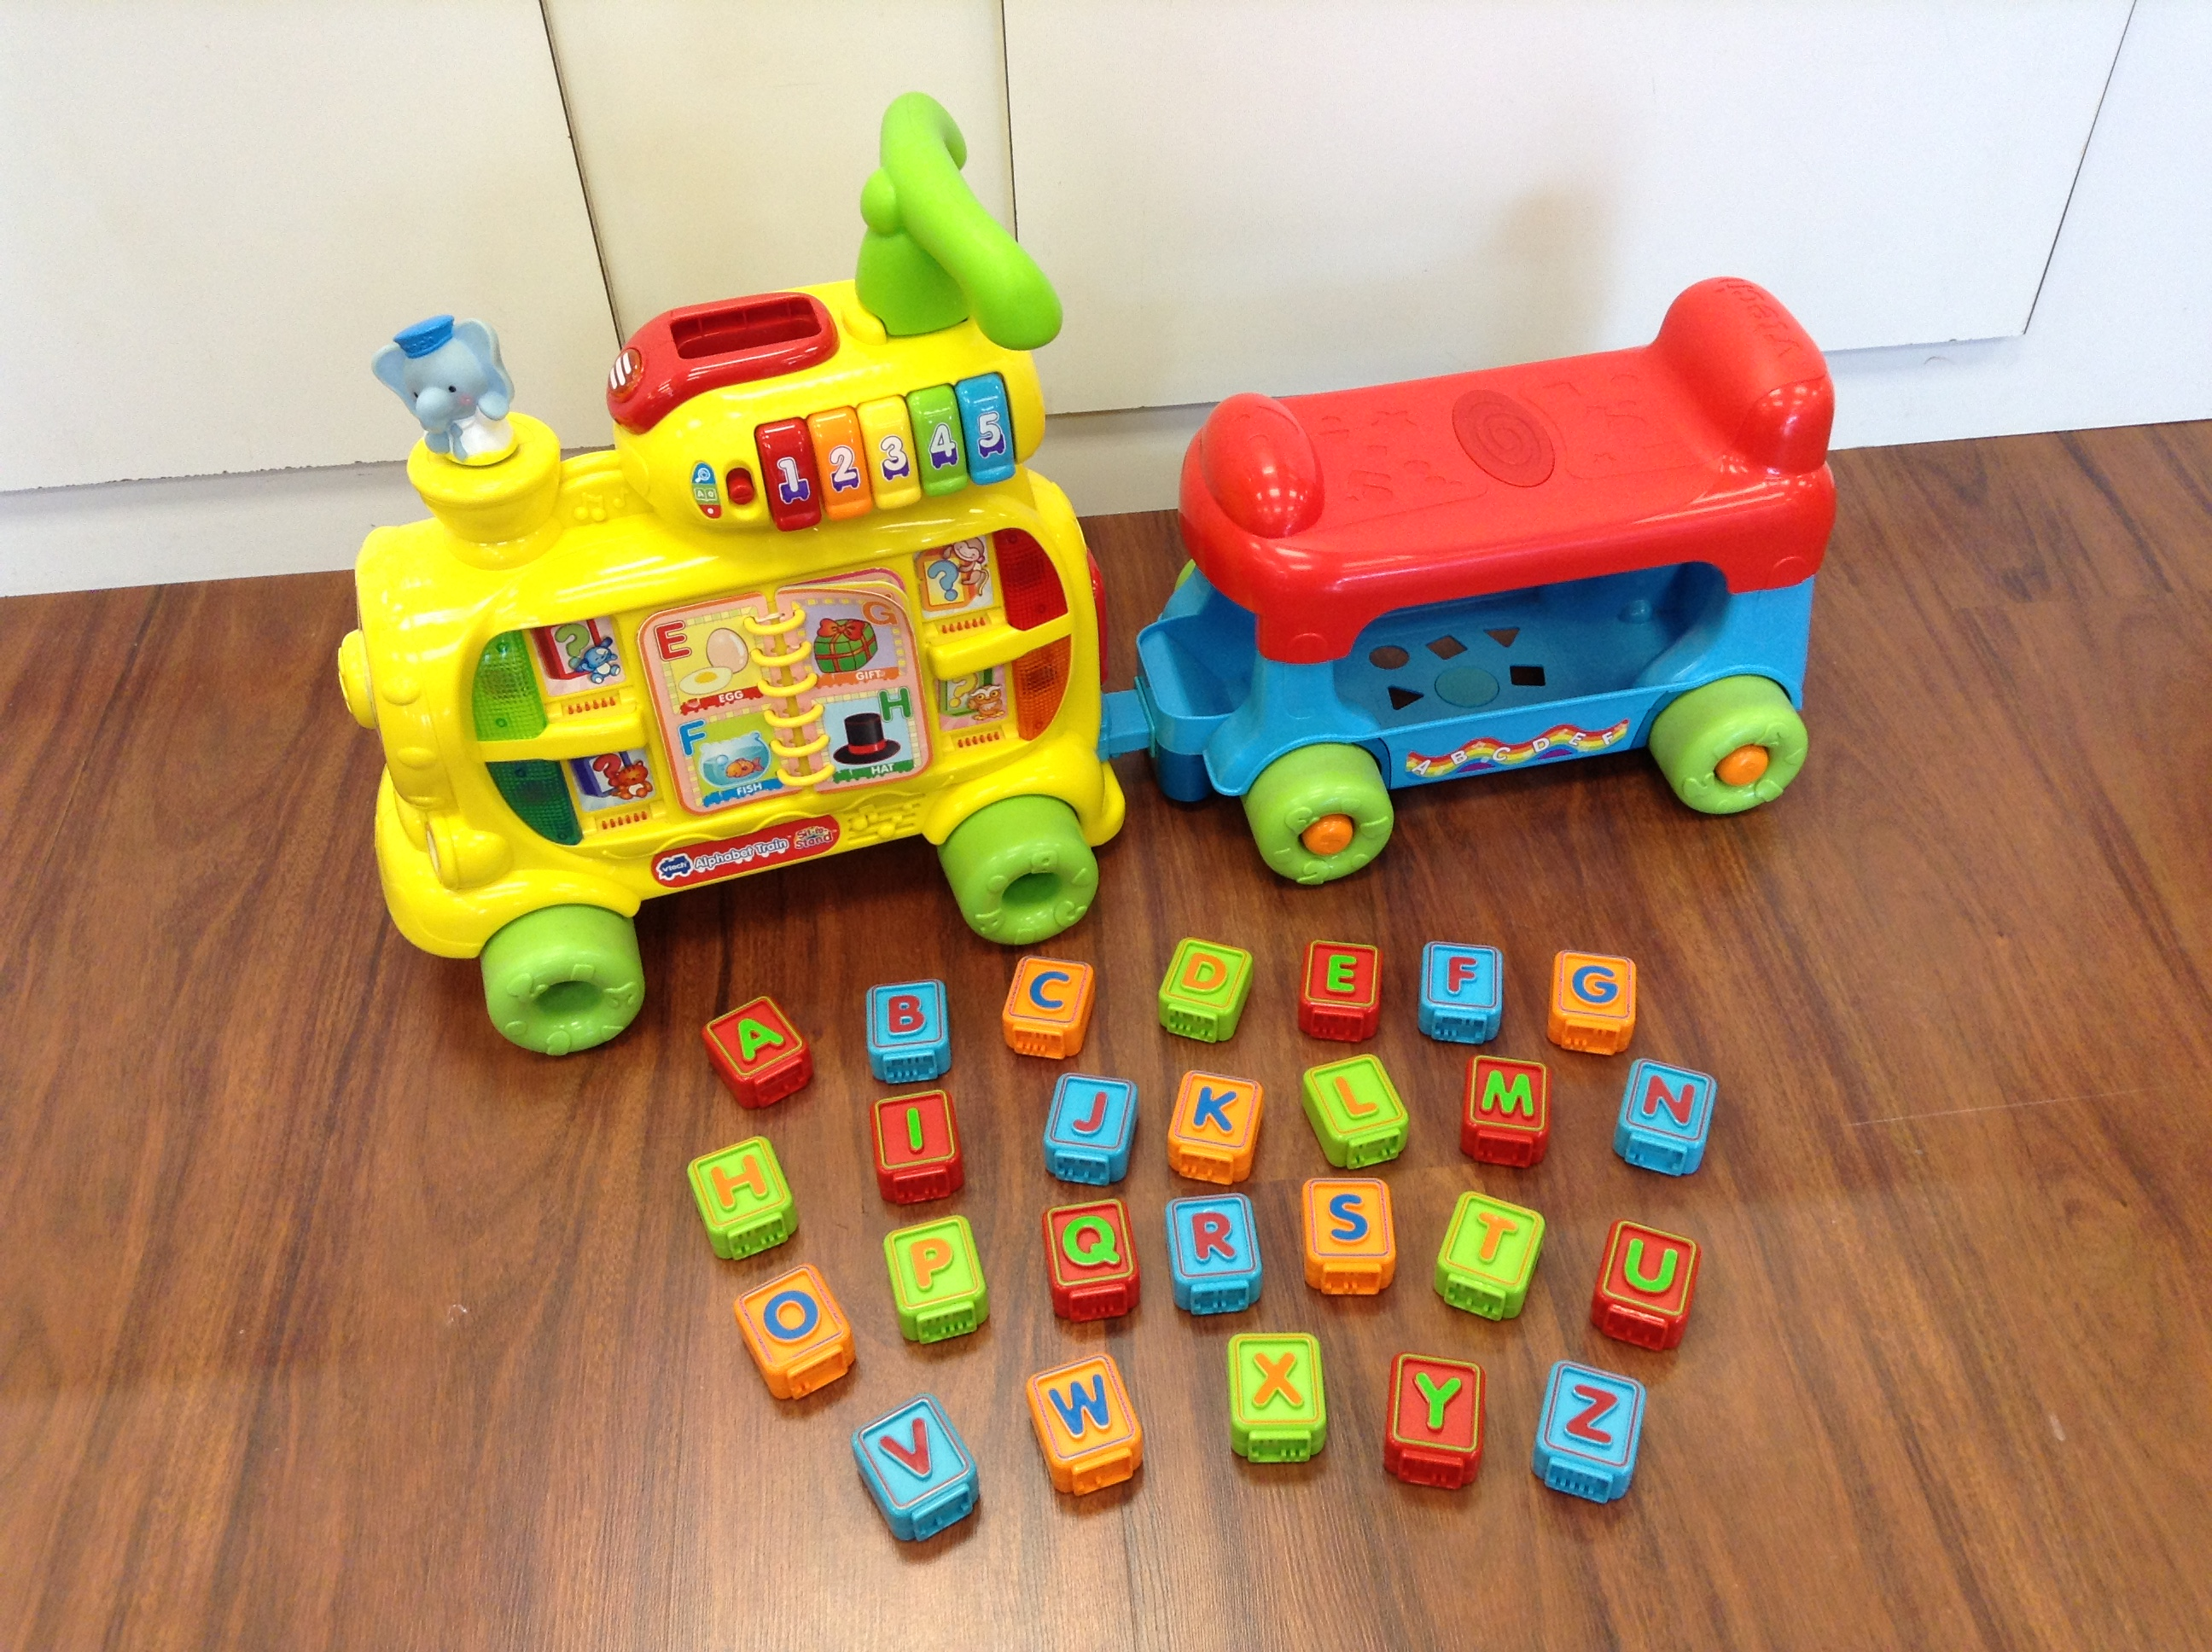 Vtech-Yellow-Large-Toys_140312A.jpg